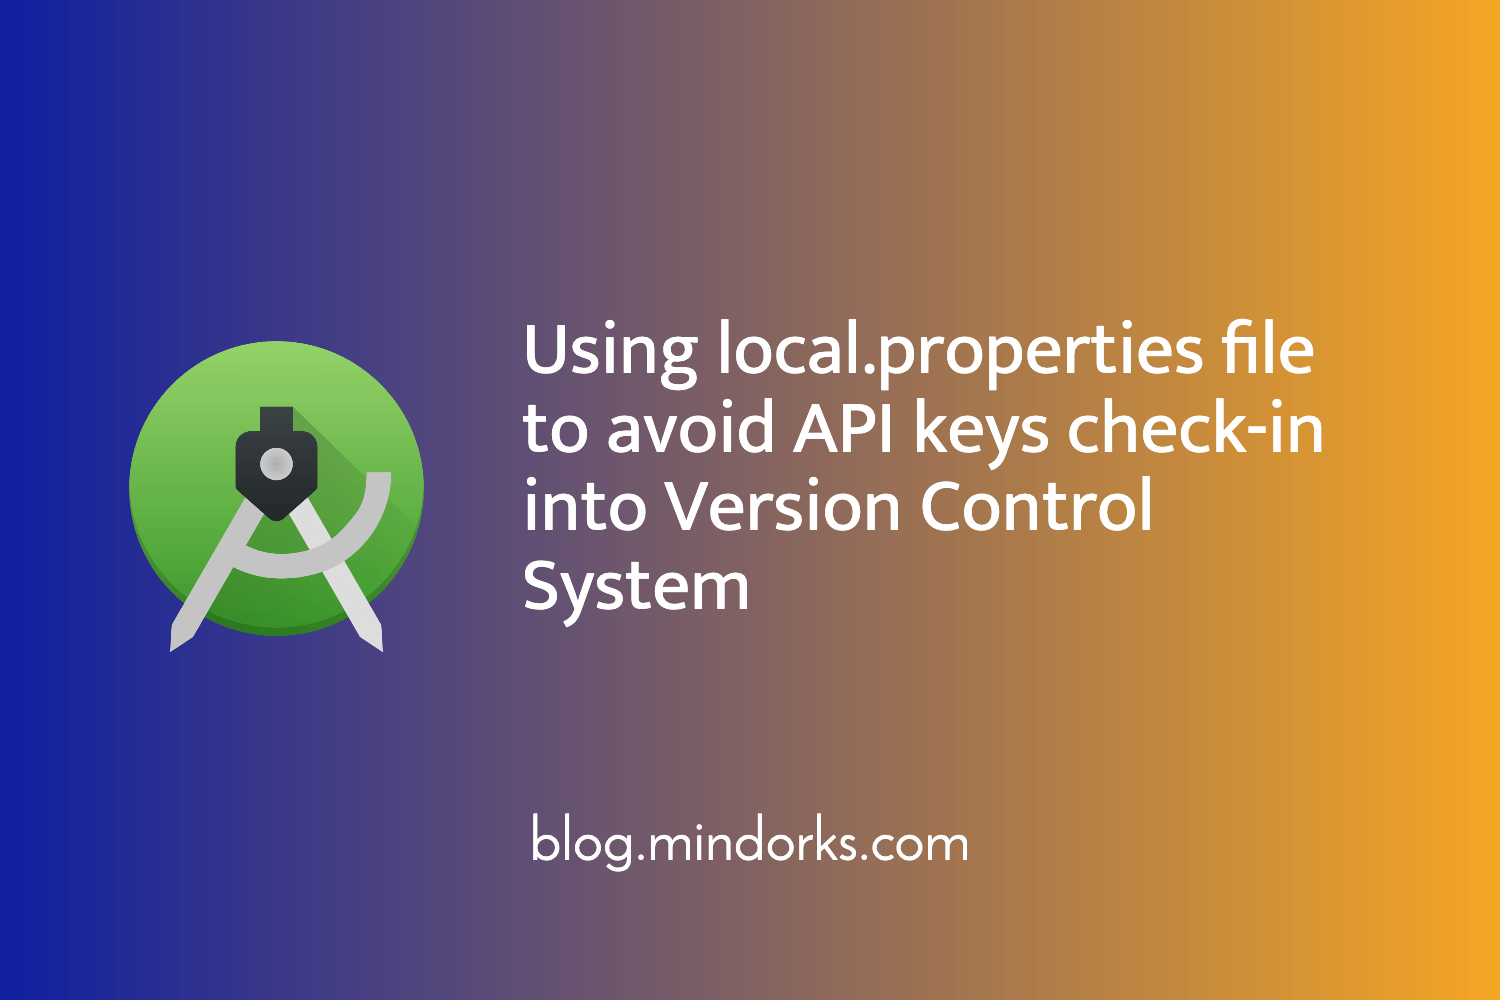 Using local.properties file to avoid API Keys check-in into Version Control System